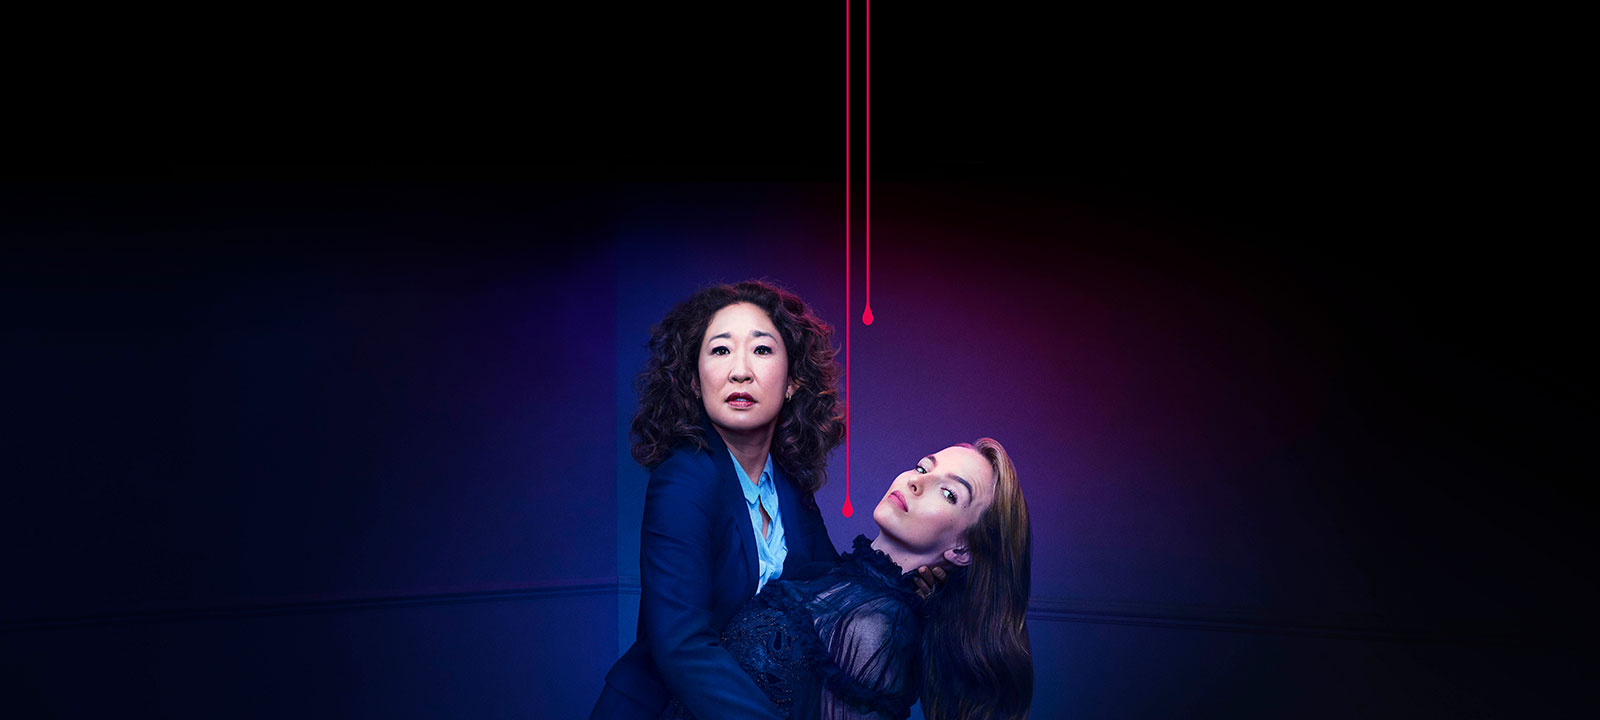 Killing Eve Season 2, Episode and Cast Information - AMC